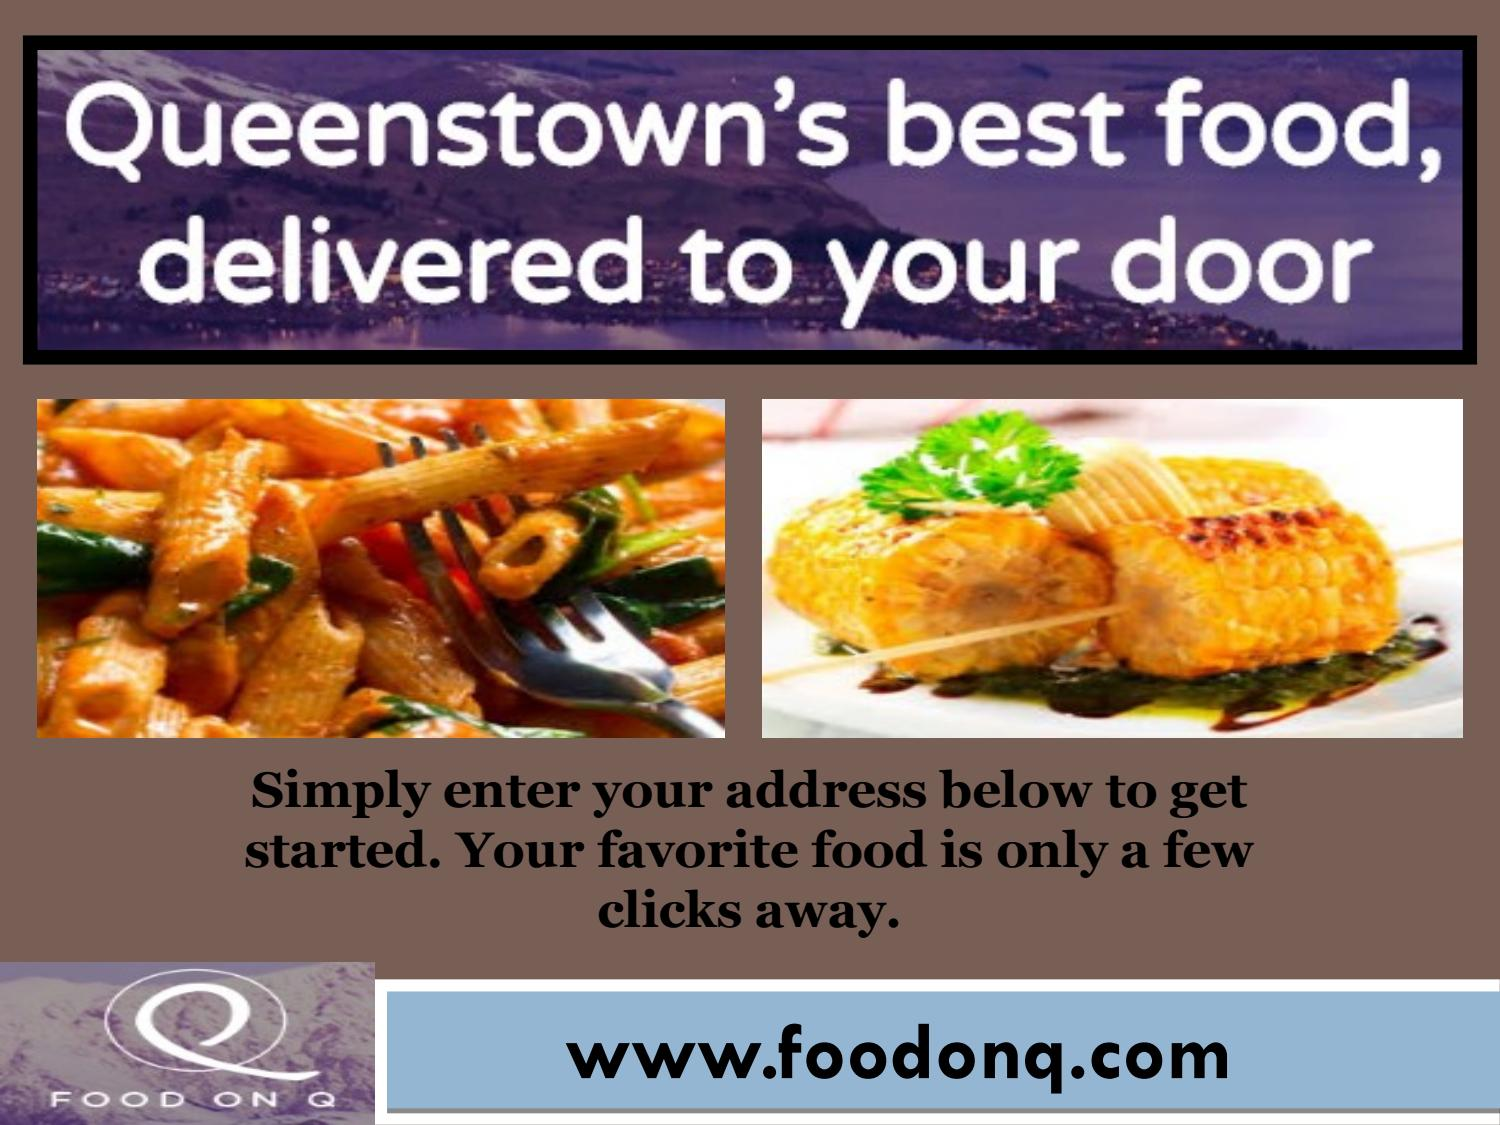 Asian food delivery best takeaways food in queenstown nz by food asian food delivery best takeaways food in queenstown nz by food nq issuu forumfinder